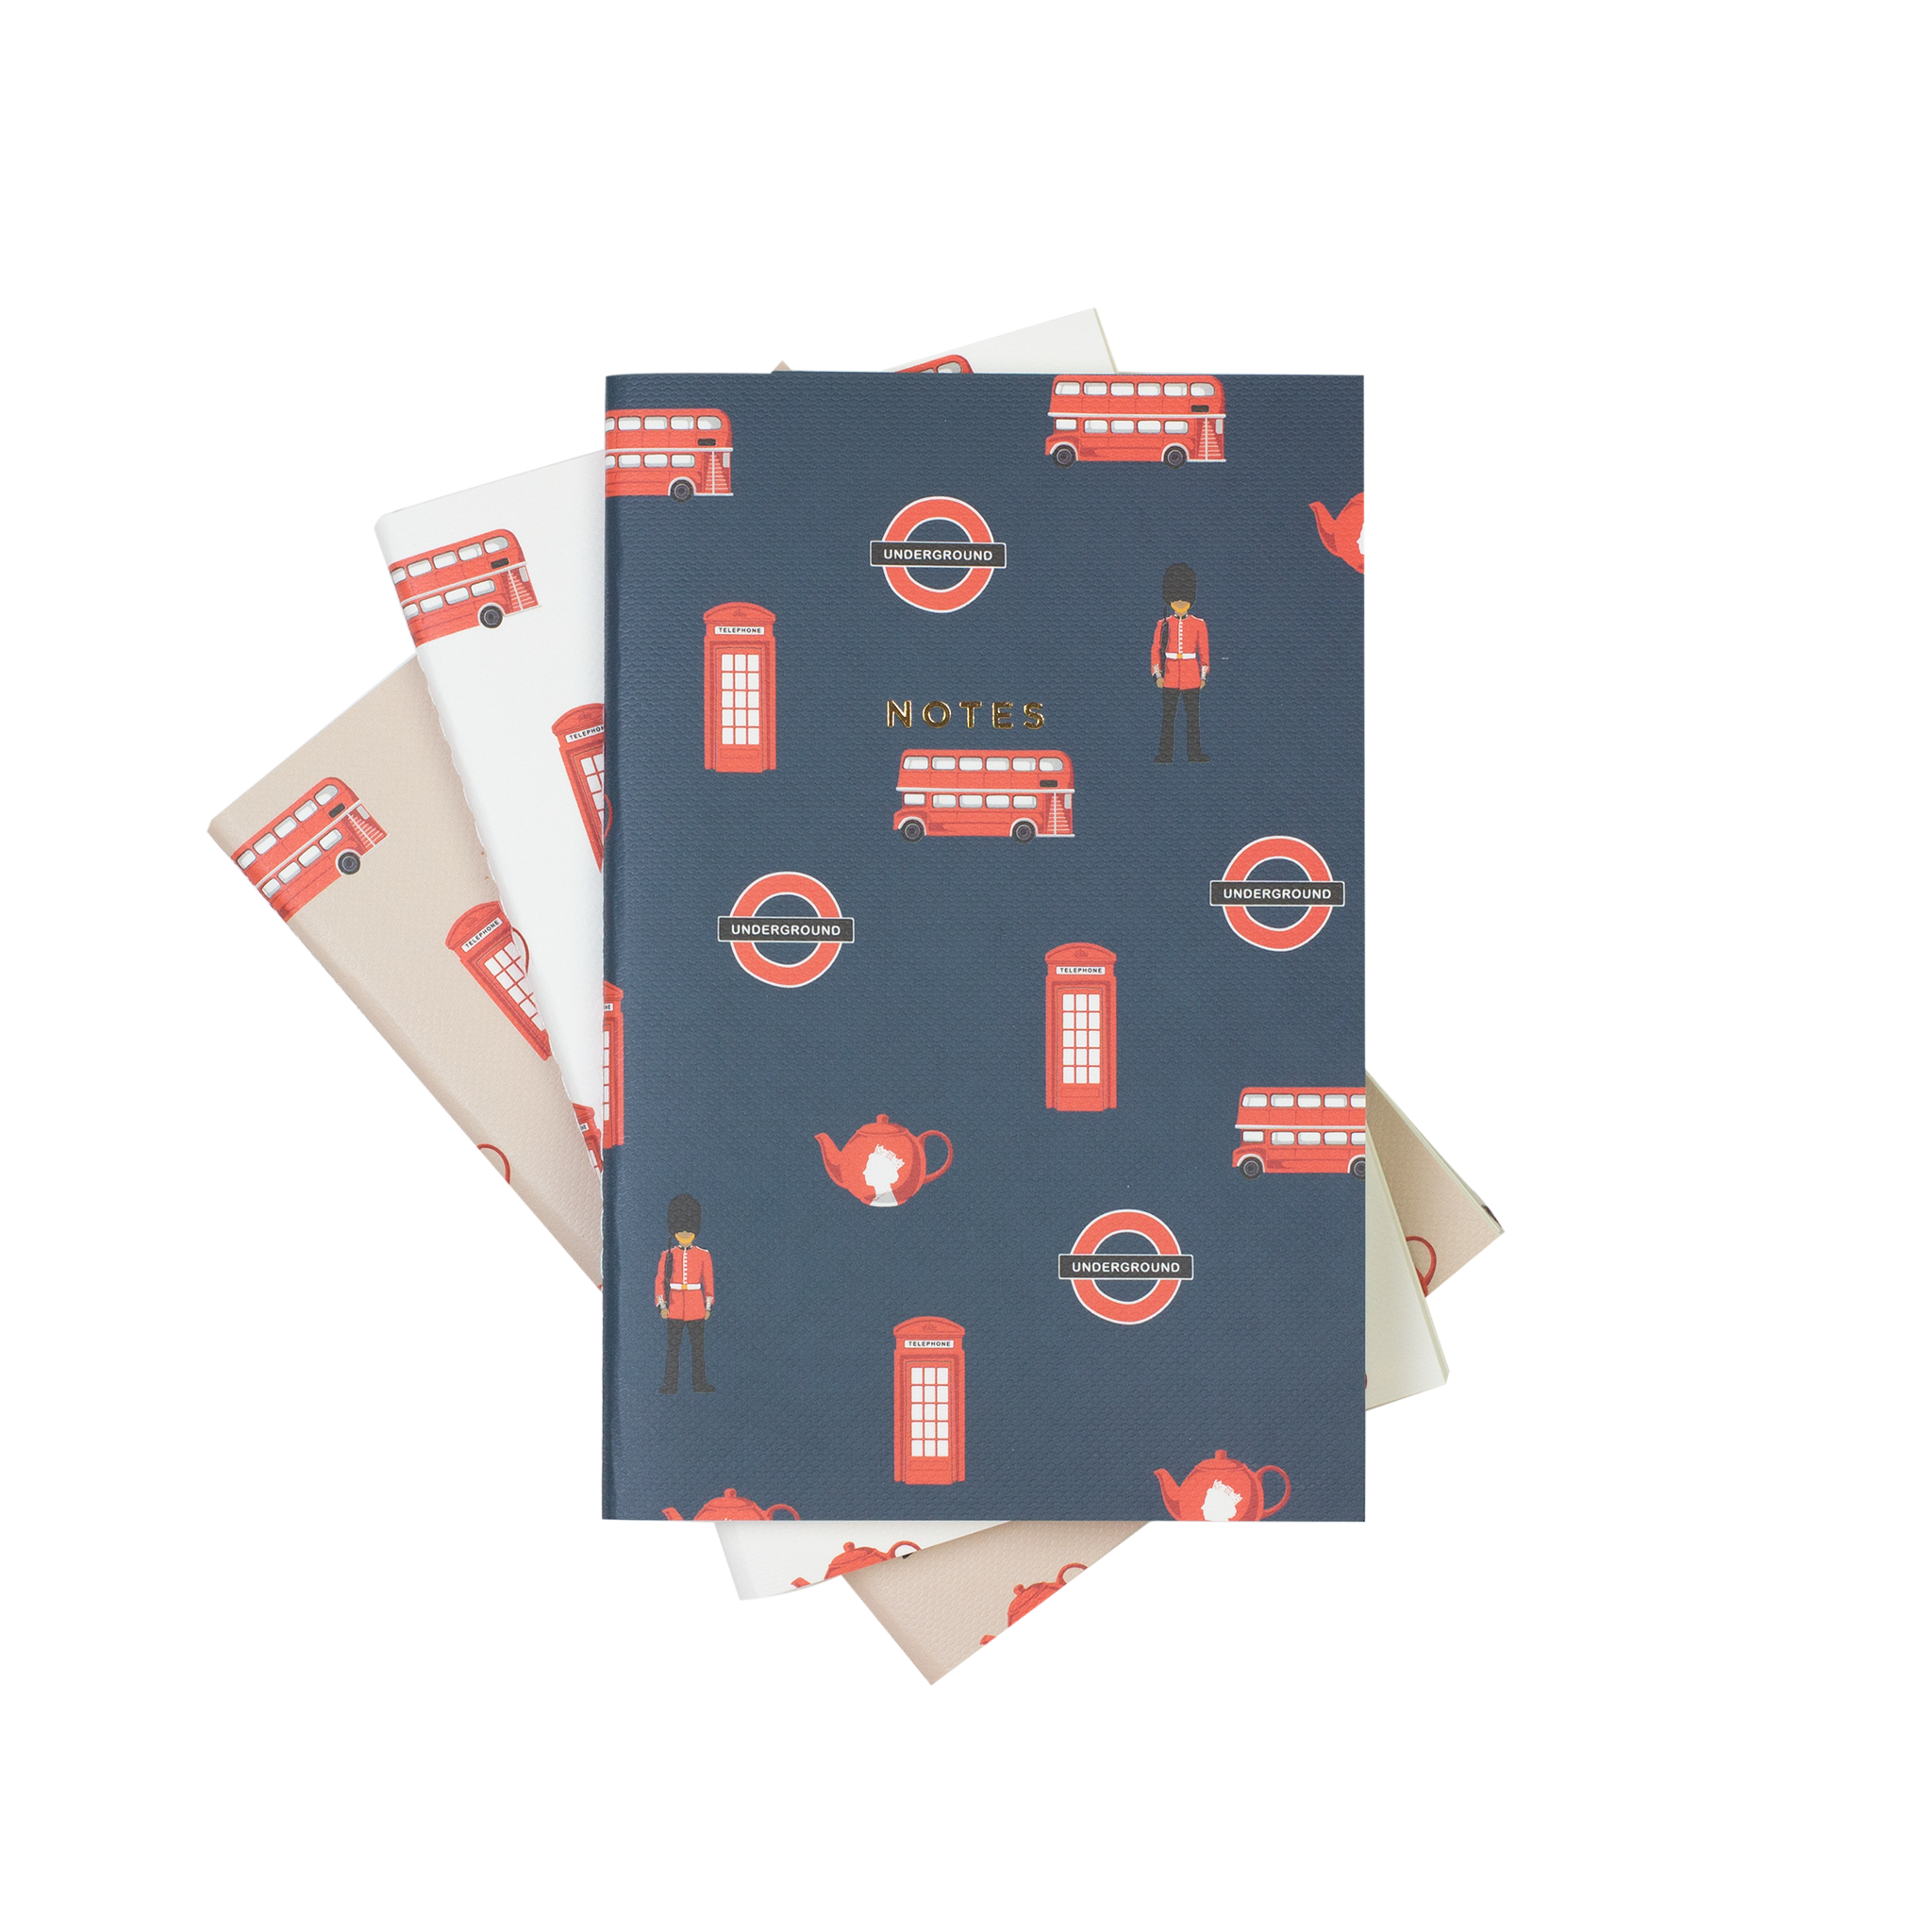 MINI LONDON NOTEBOOK 3/SET - Hadron Epoch